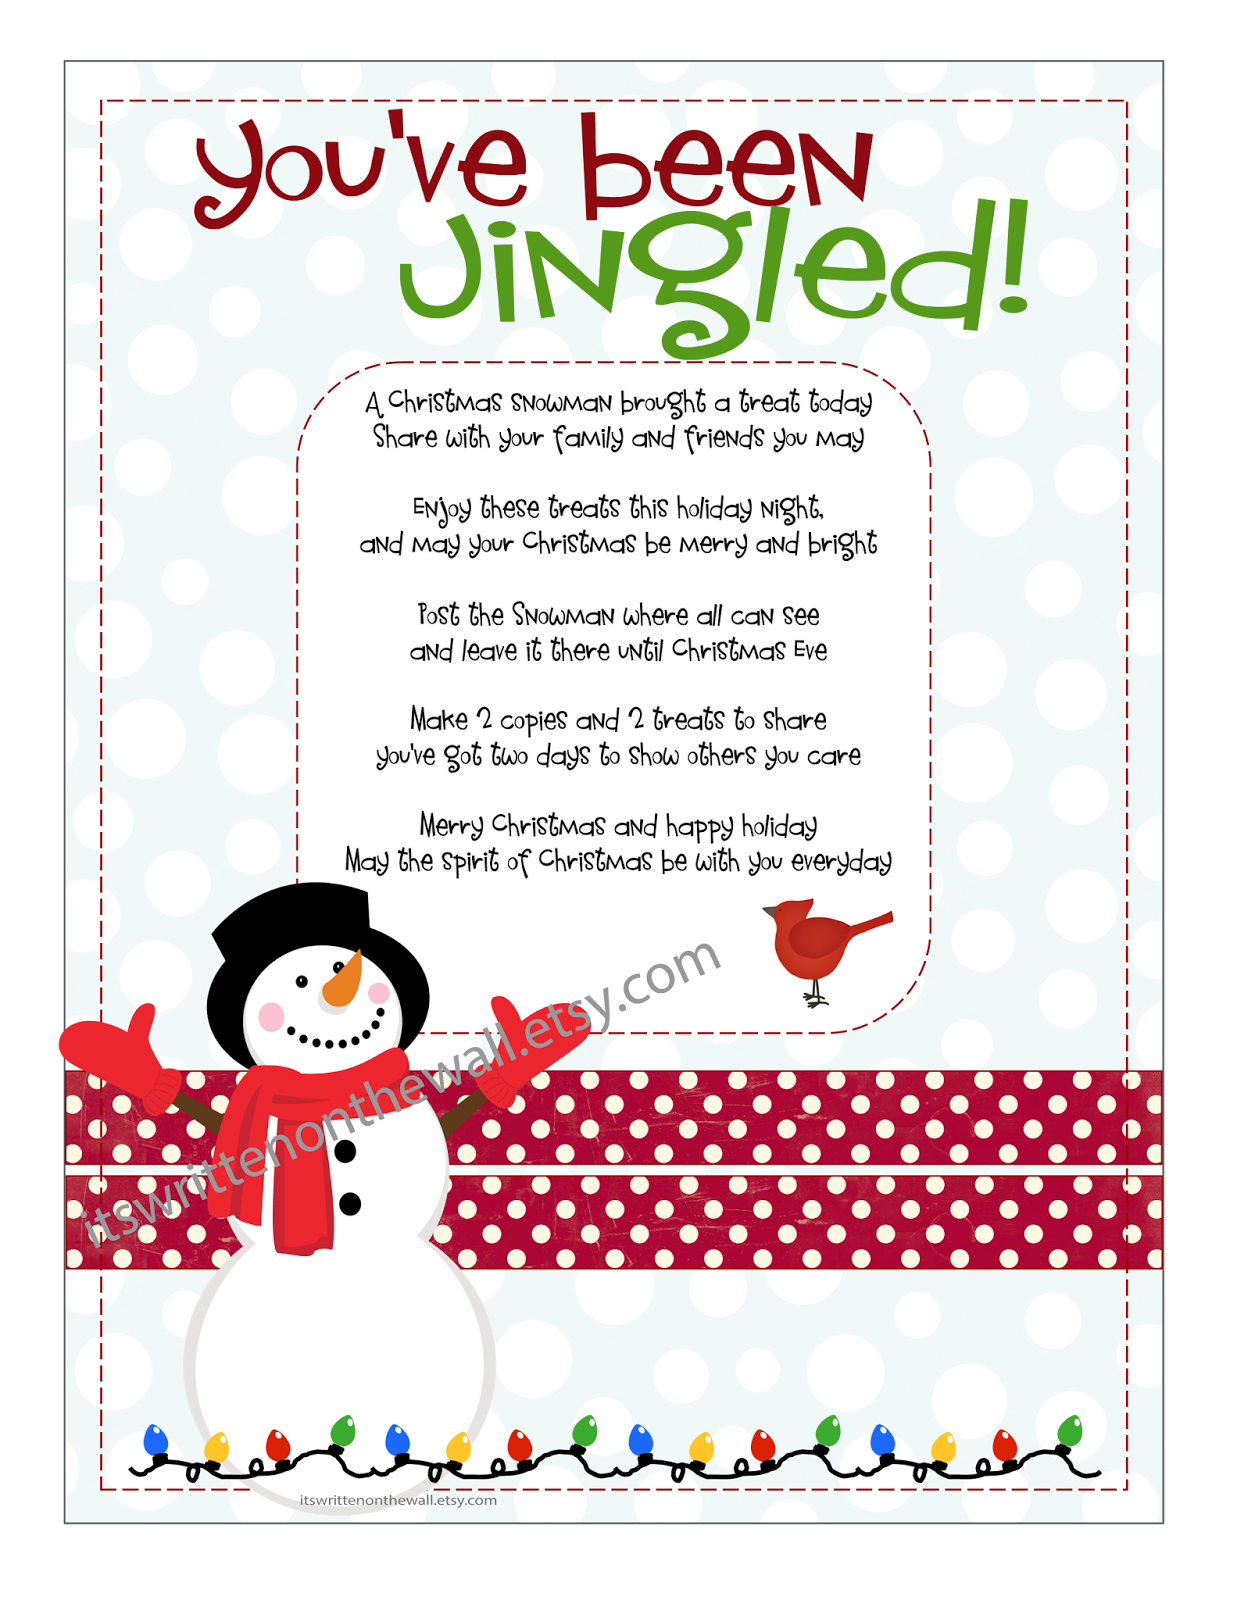 picture relating to You Ve Been Socked Printable referred to as Its Created upon the Wall: Xmas Youve Been Jingled +